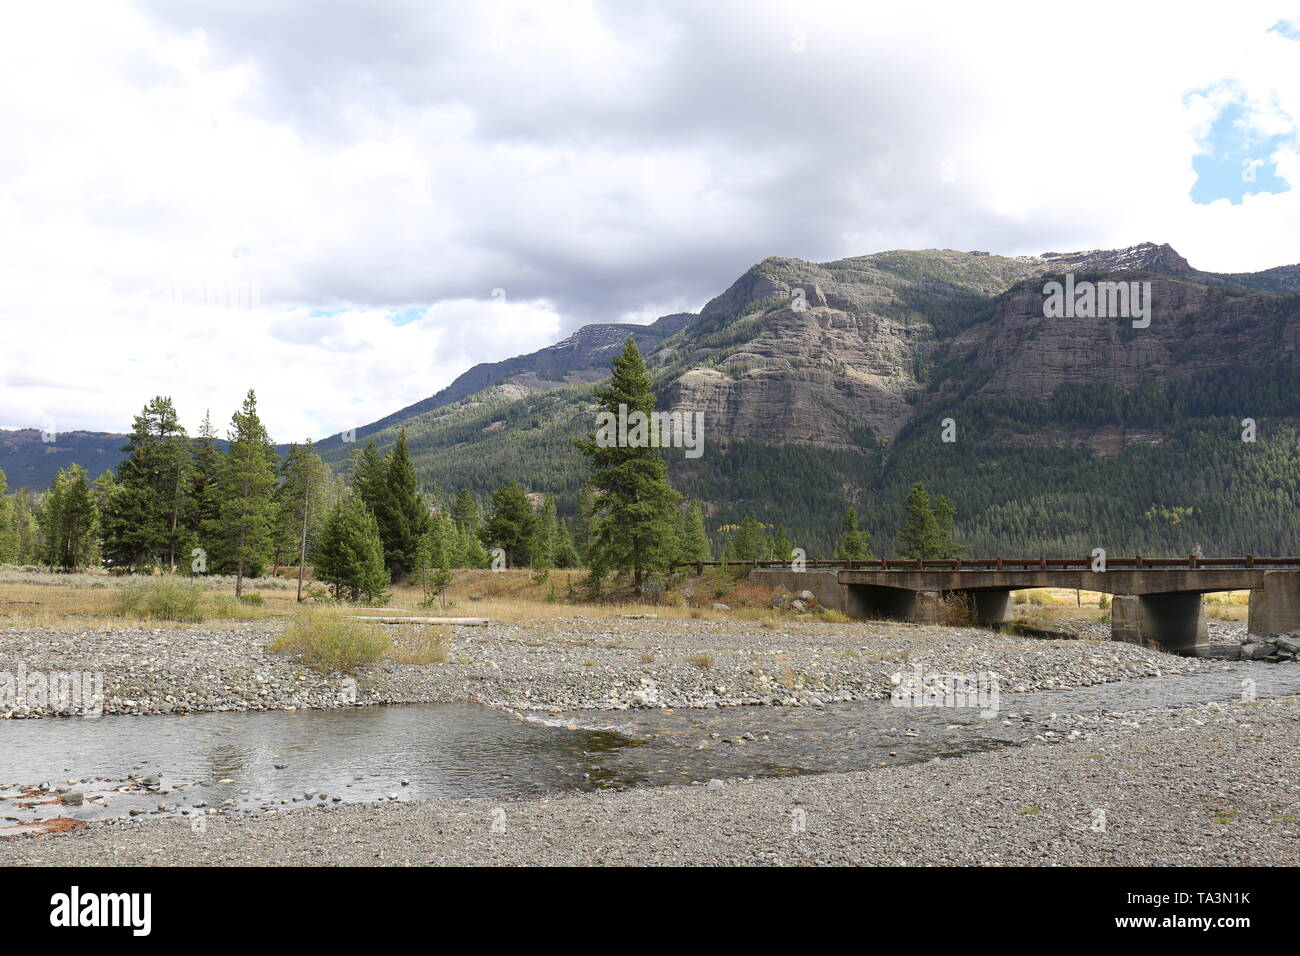 Pebble Creek at Yellowstone National Park with coniferous trees and mountain in the background - Stock Image